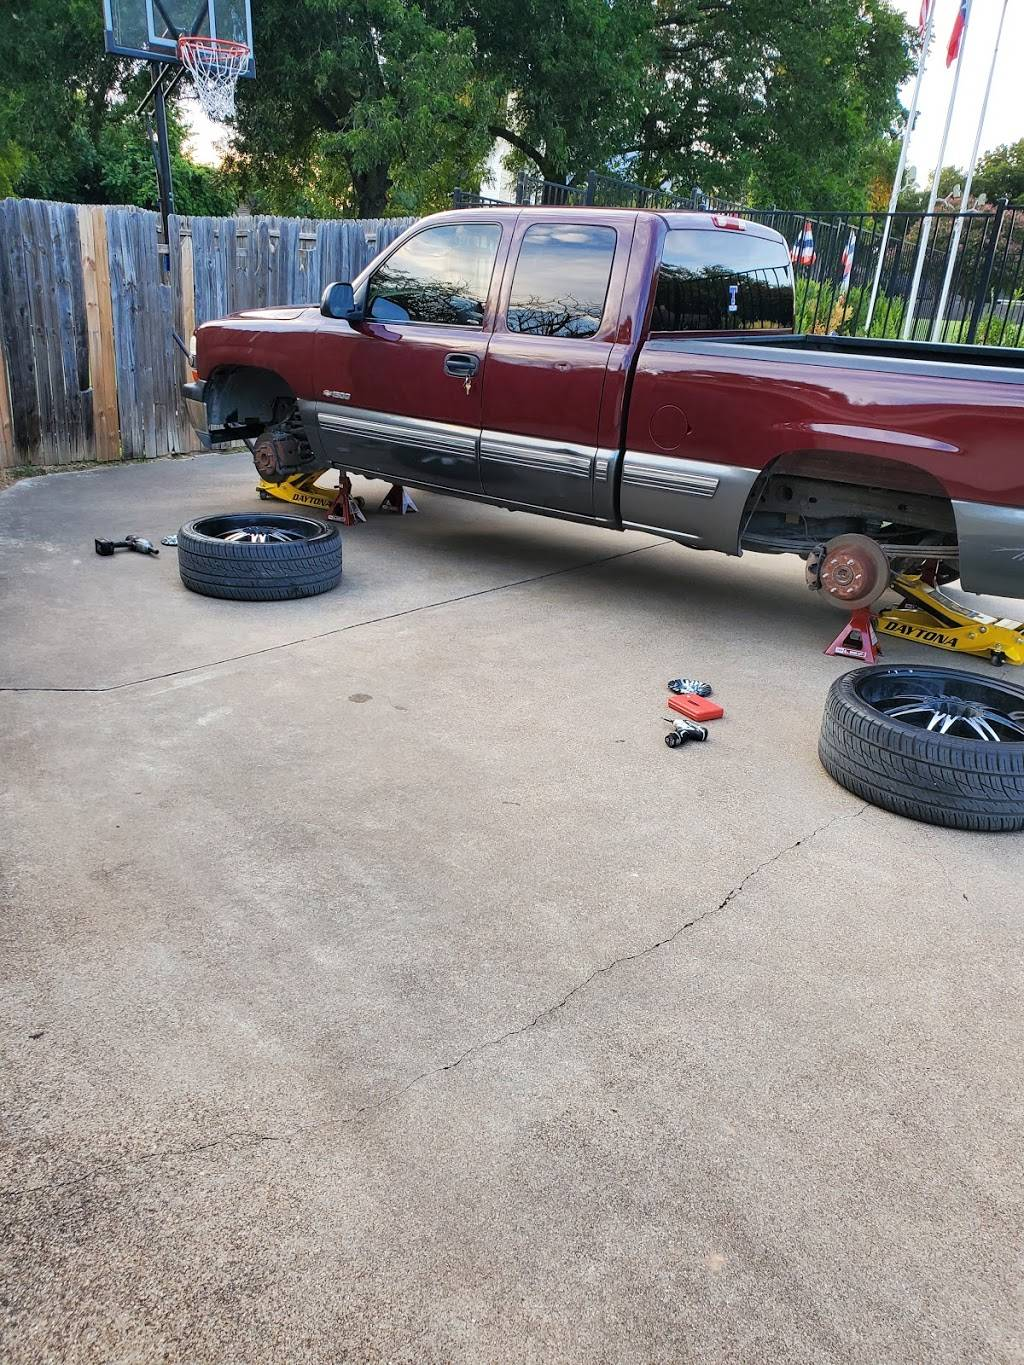 Great Days Tires LLC (Mobile) - car repair  | Photo 3 of 6 | Address: The pin located at 32.661661, -96.958202 should be removed or moved to 8334, Timberbrook Ln, Dallas, TX 75249, USA | Phone: (214) 552-4414